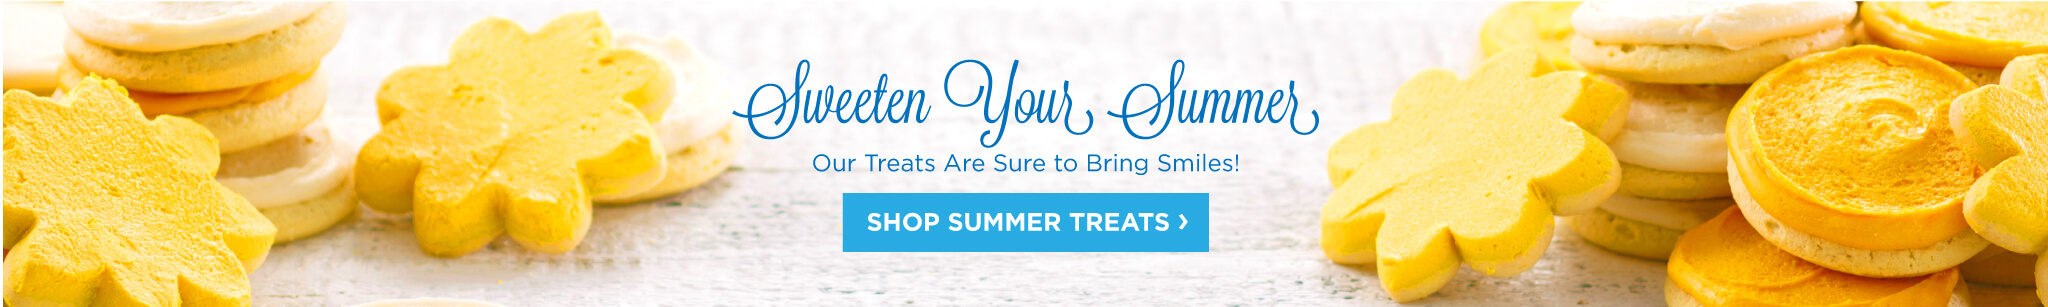 Sweeten Your Summer - Our Cookie Treats Are Sure to Bring Smiles